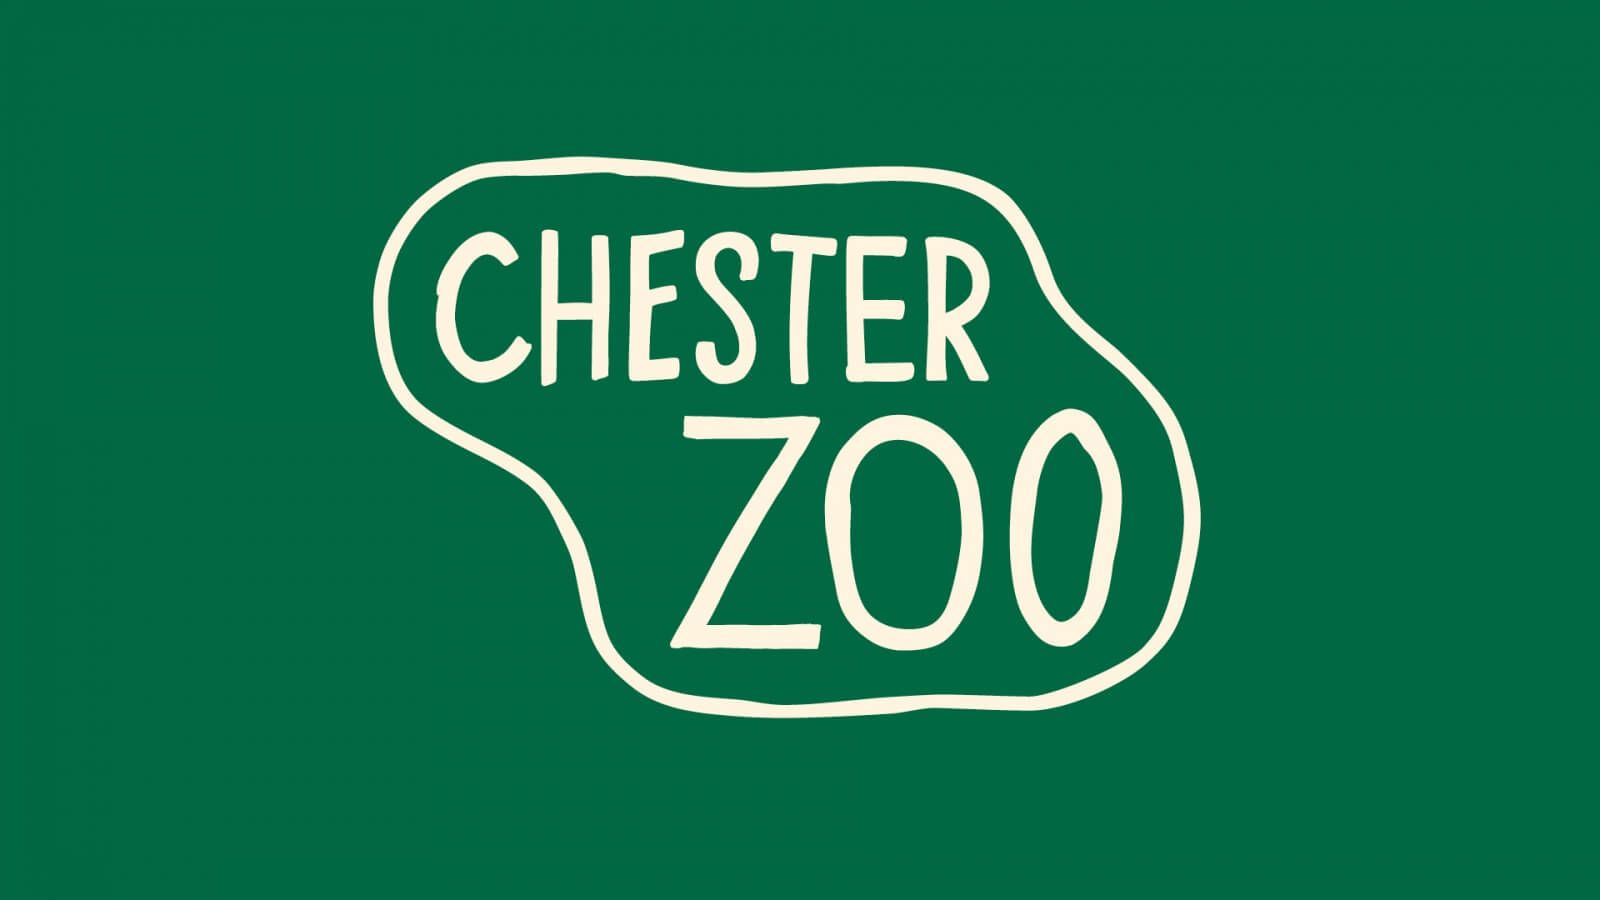 Chris Green MP welcomes reopening of Chester Zoo   Chris Green